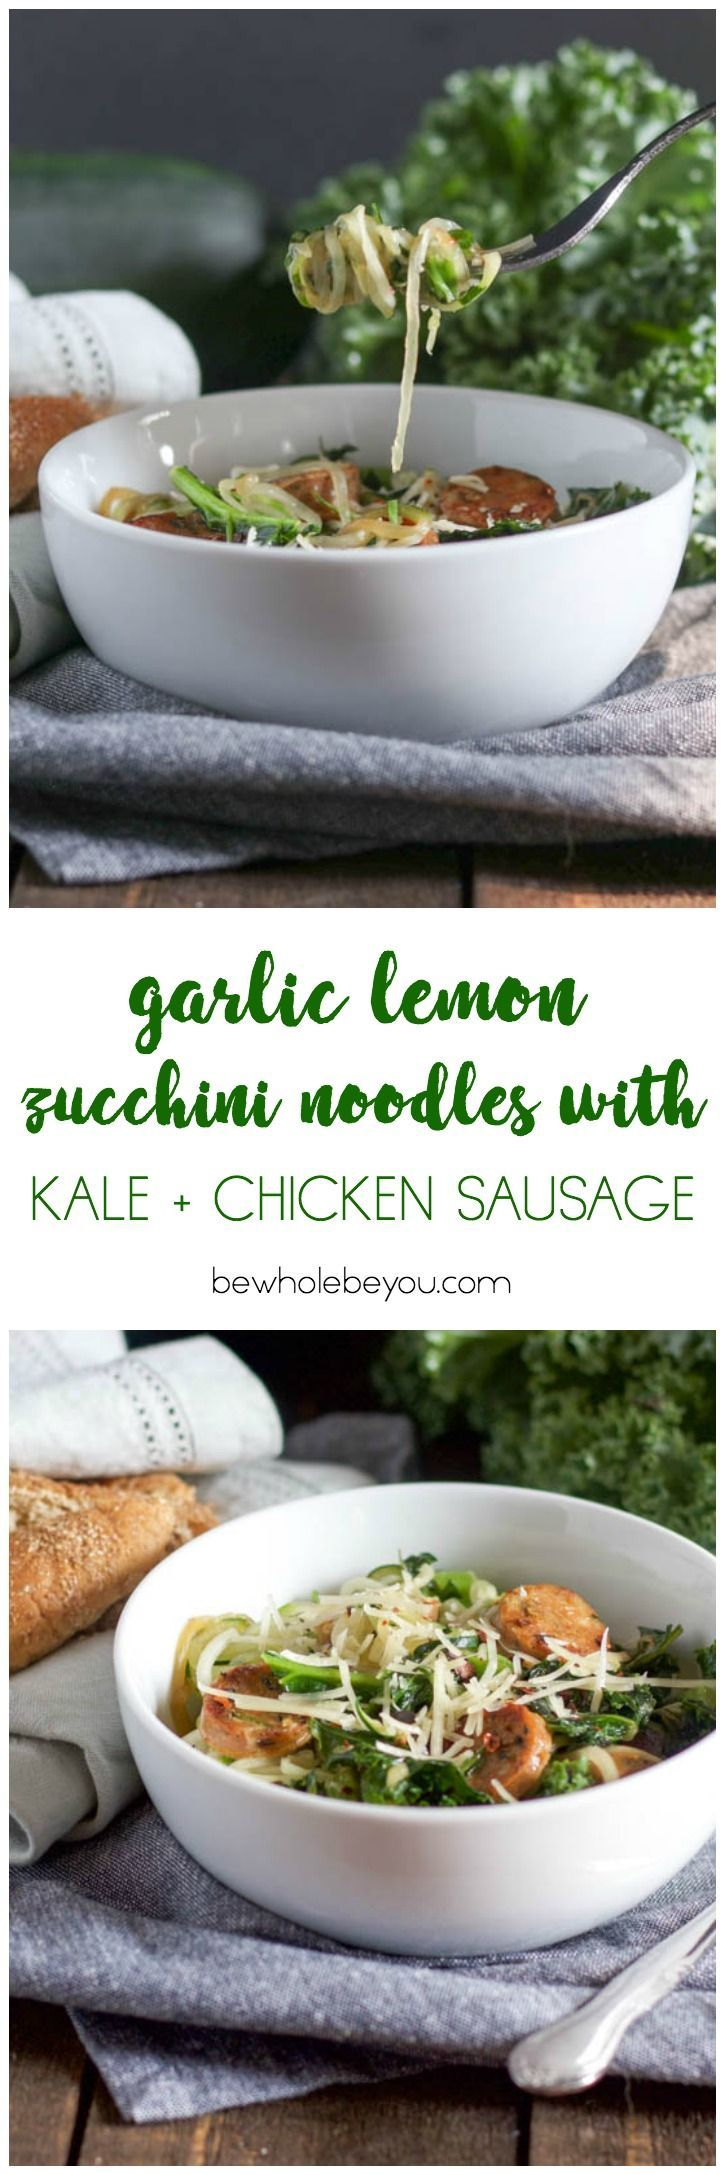 Garlic Lemon Zucchini Noodles with Kale and Chicken Sausage. Be Whole. Be You.